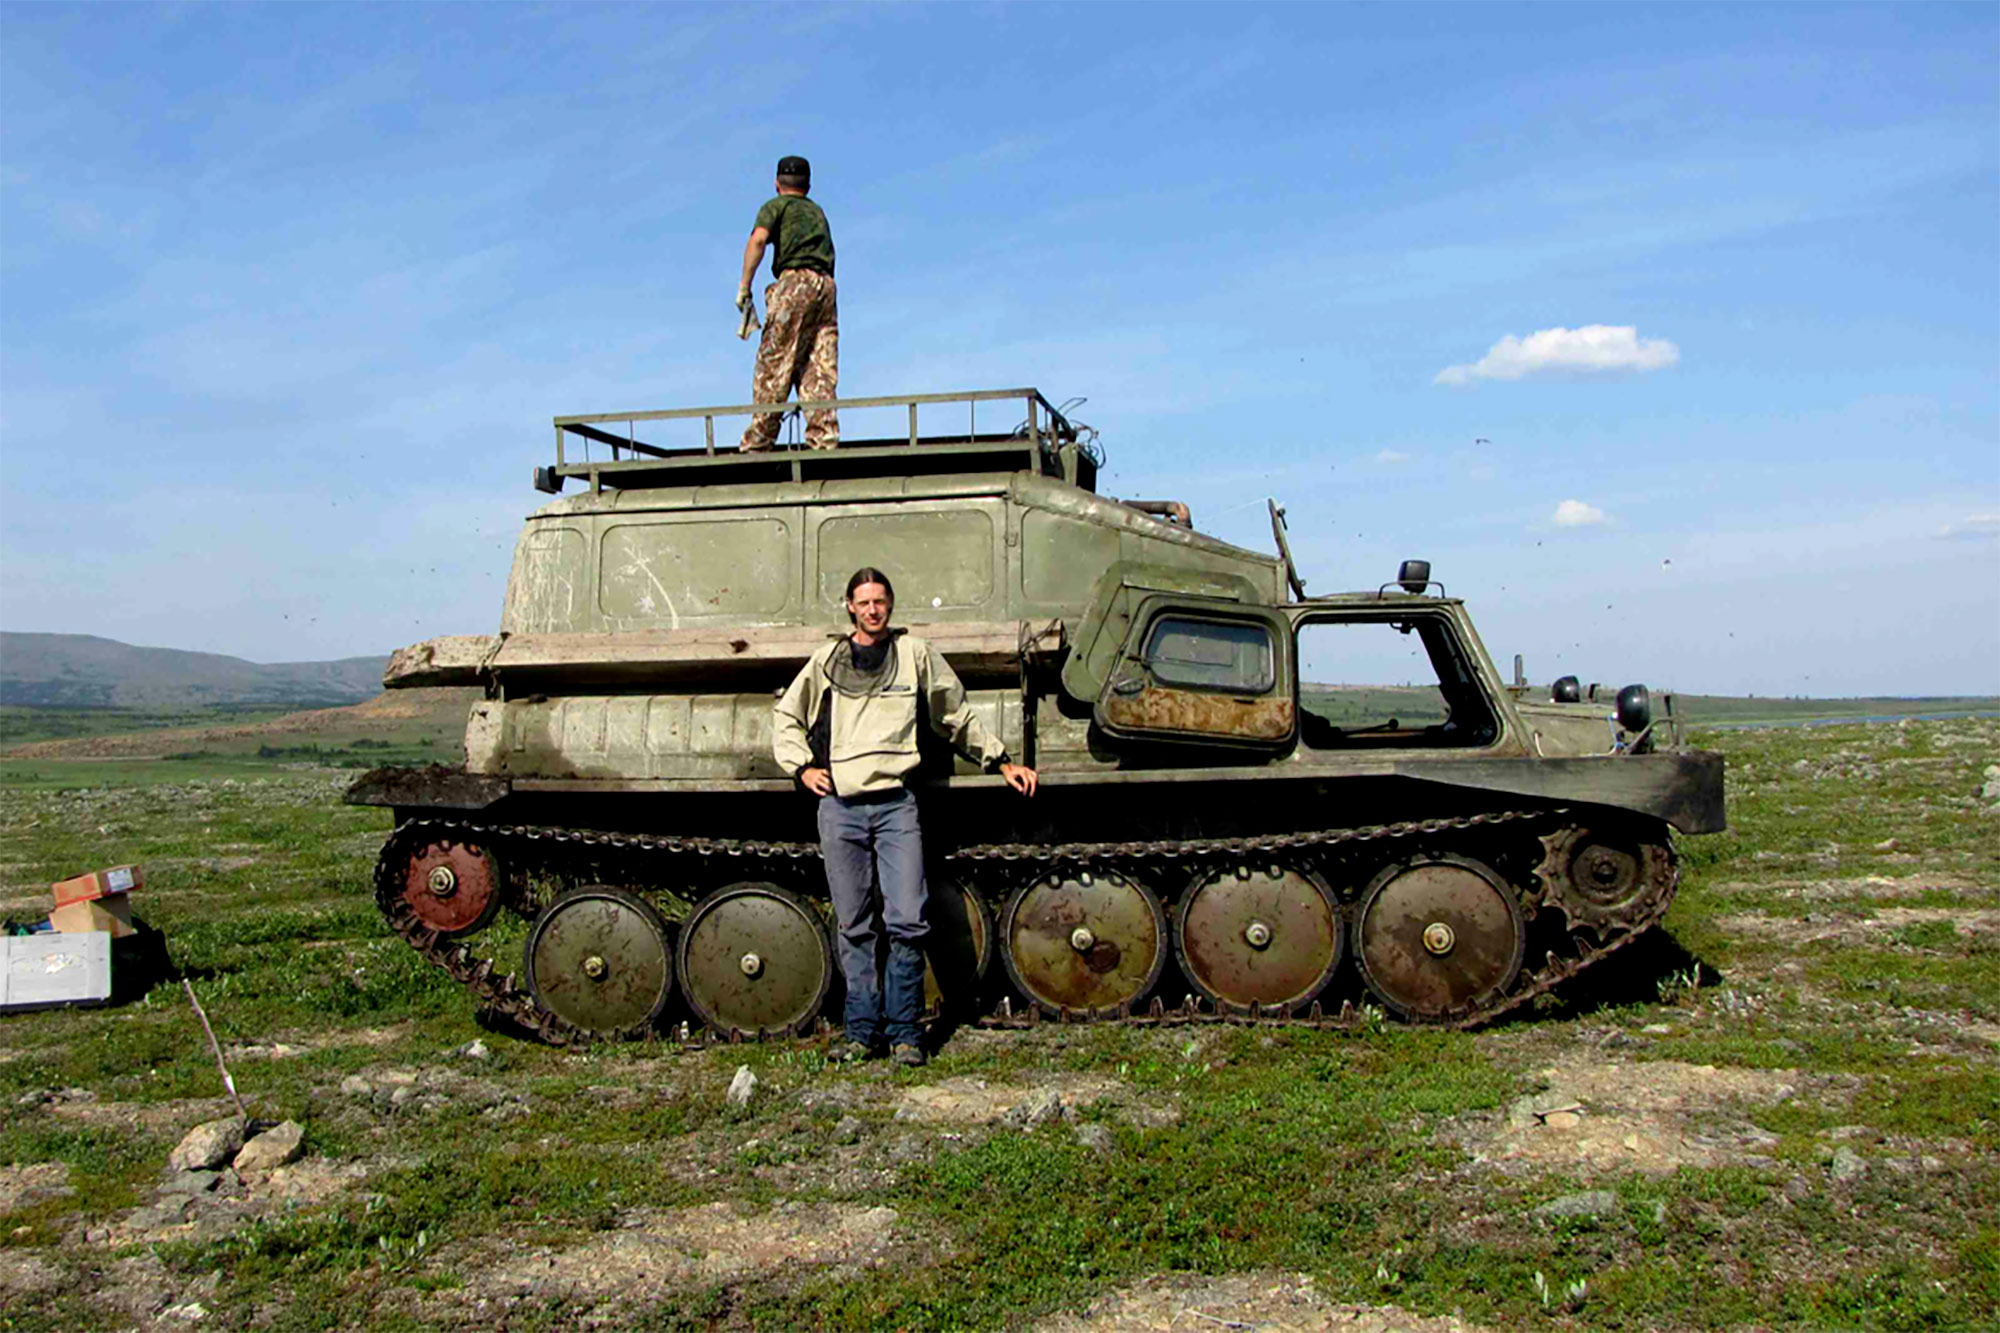 Researcher Gerald Frost stands before an old Russian armored vehicle he and Epstein used to study remote areas of Arctic tundra.